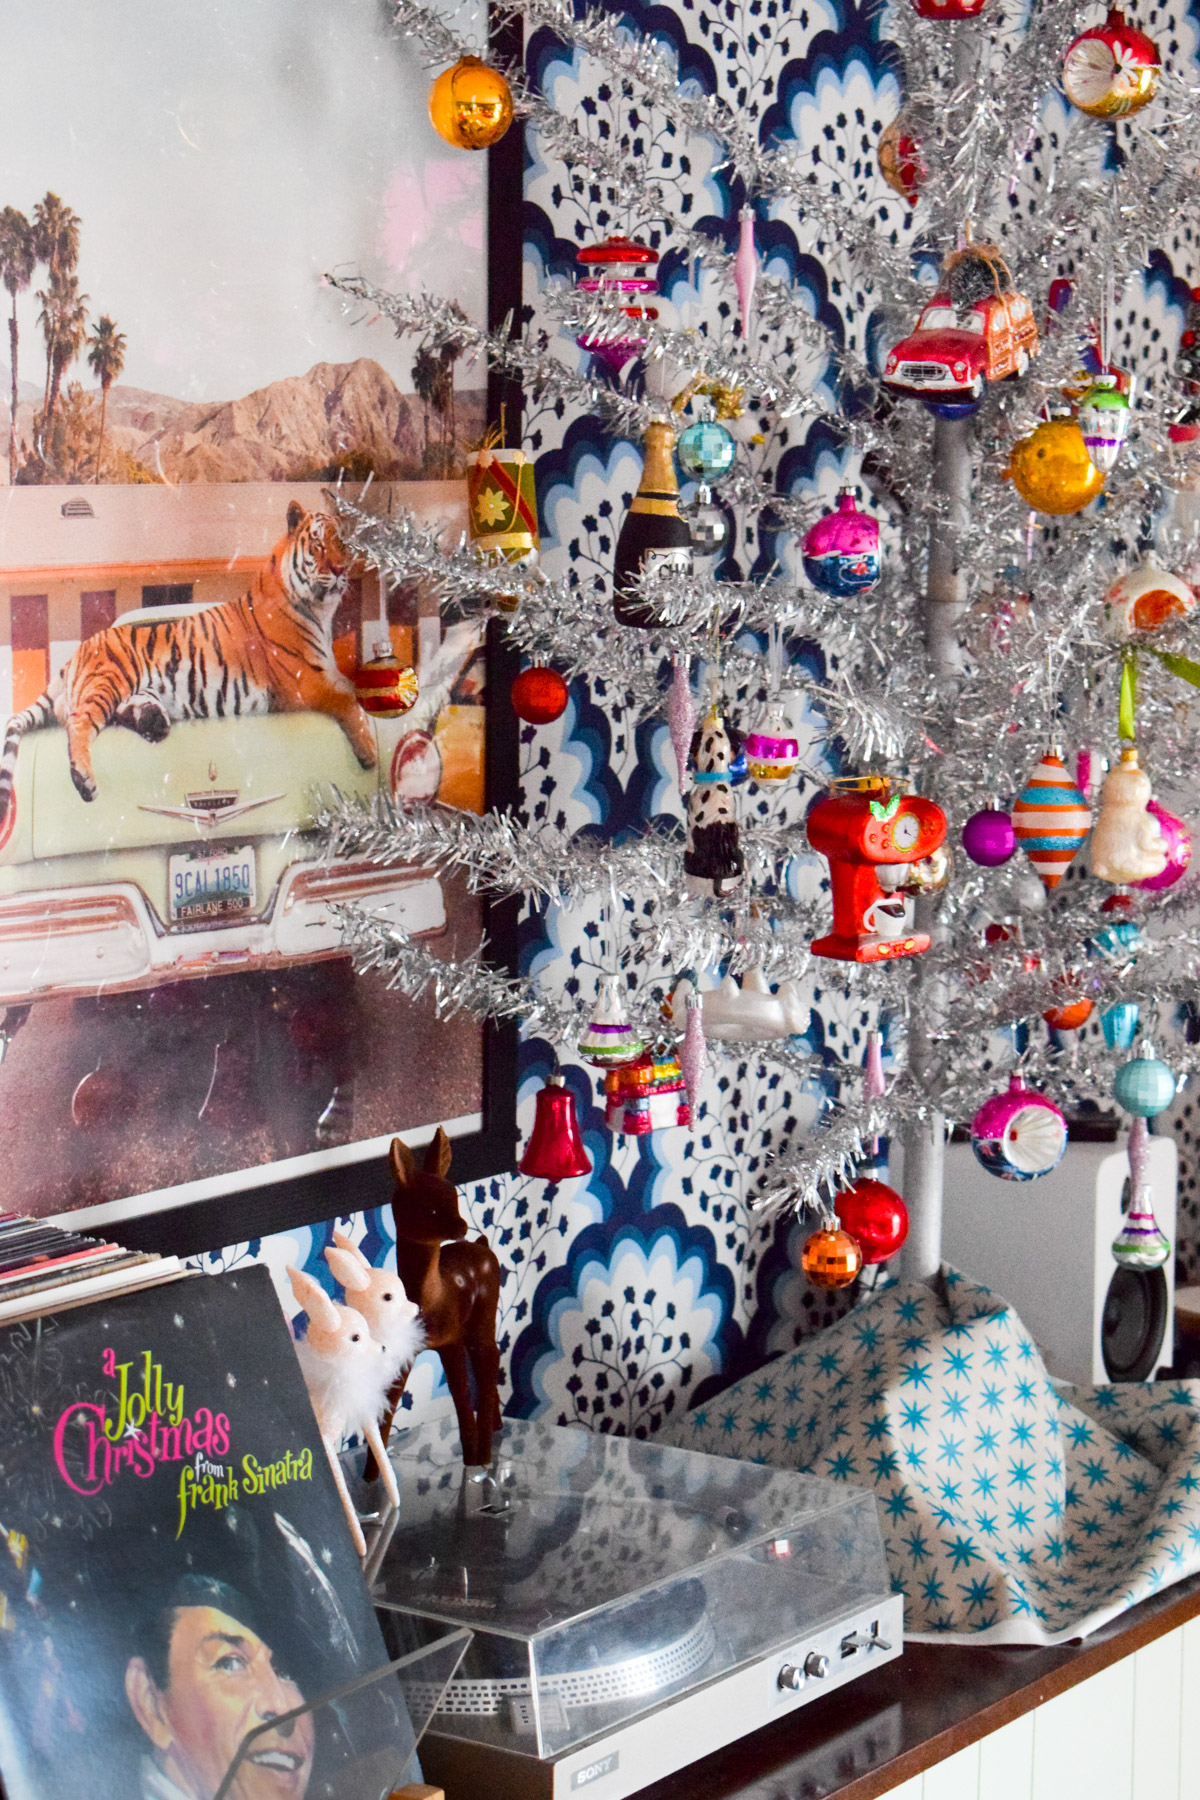 Got a retro tinsel Christmas tree? Come see how I decorated mine using vintage and collected glass ornaments.